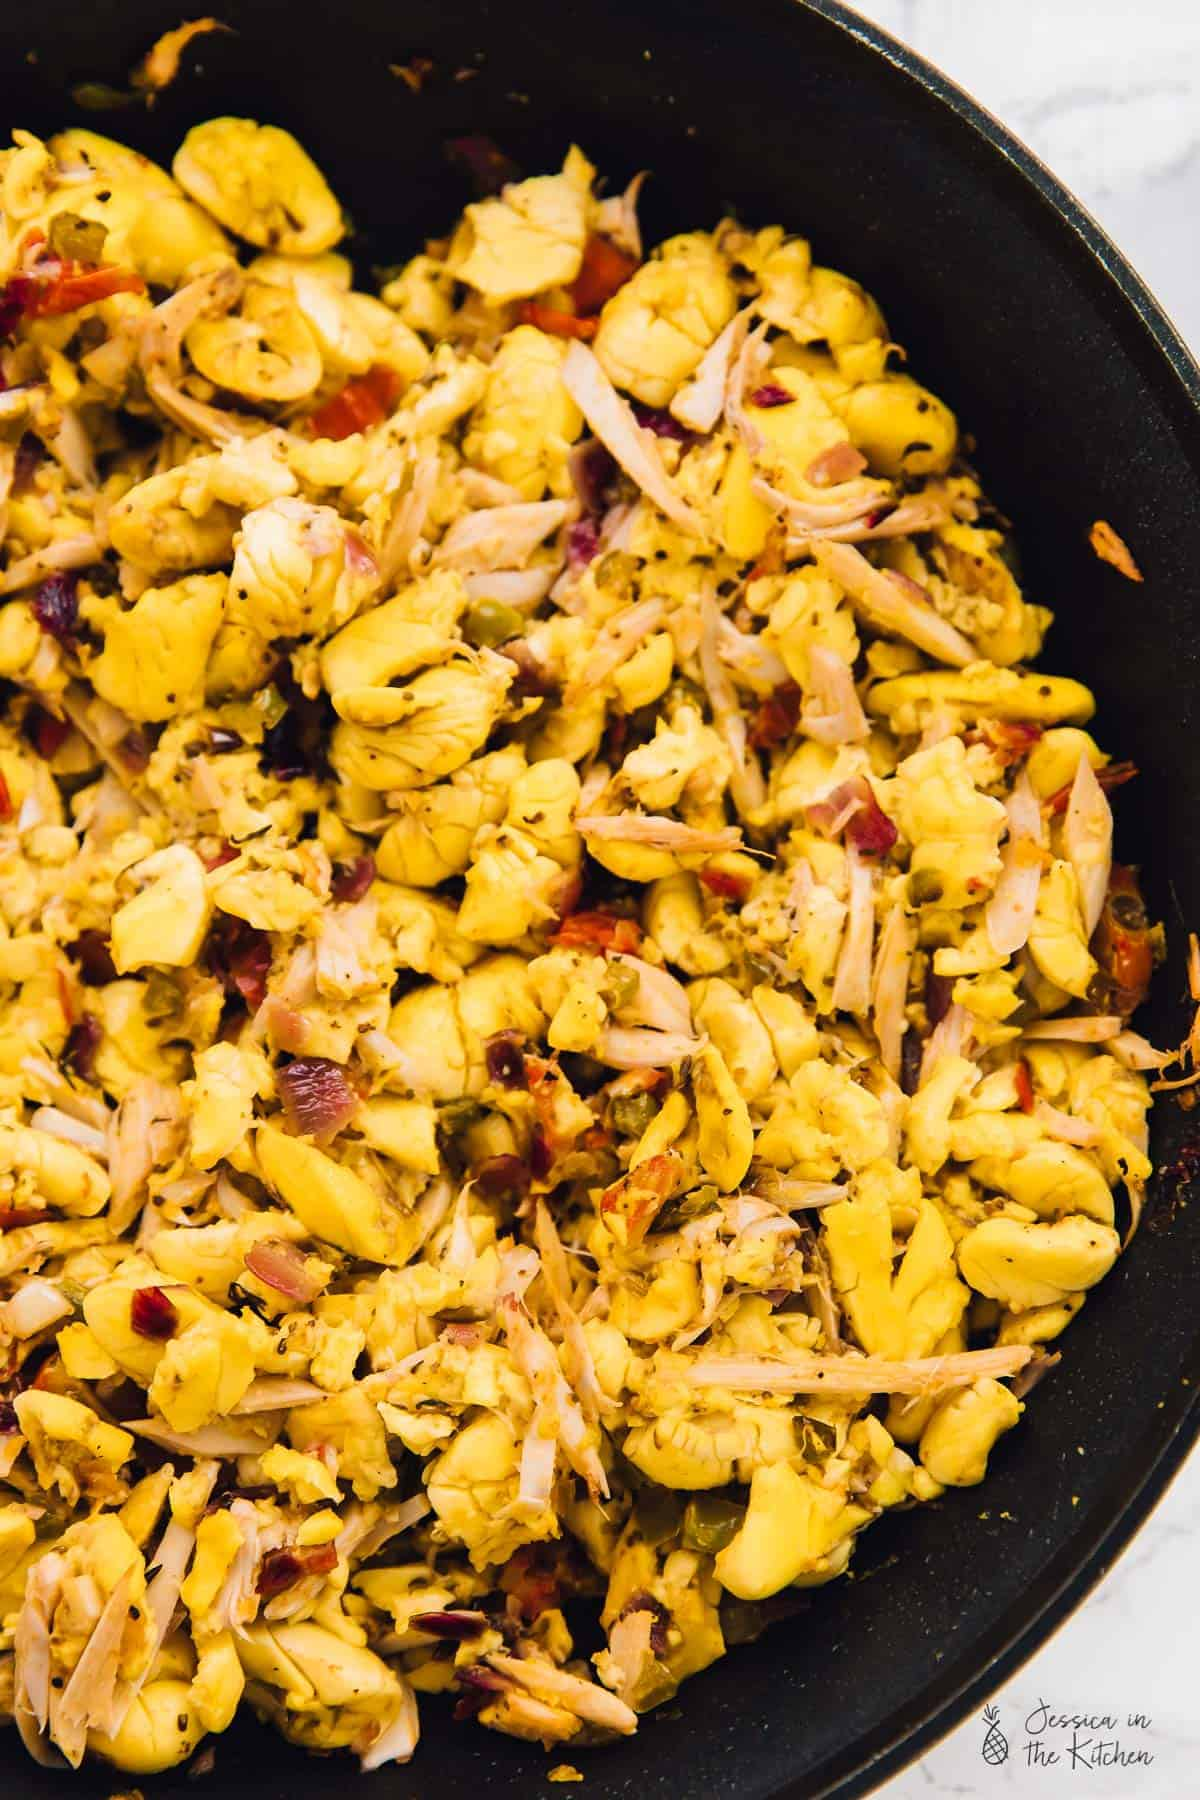 A vegan take on Jamaica's National Dish and my favourite breakfast in the world: Ackee and Saltfish. This is one of the most flavourful breakfasts ever and perfect comfort food! via https://jessicainthekitchen.com